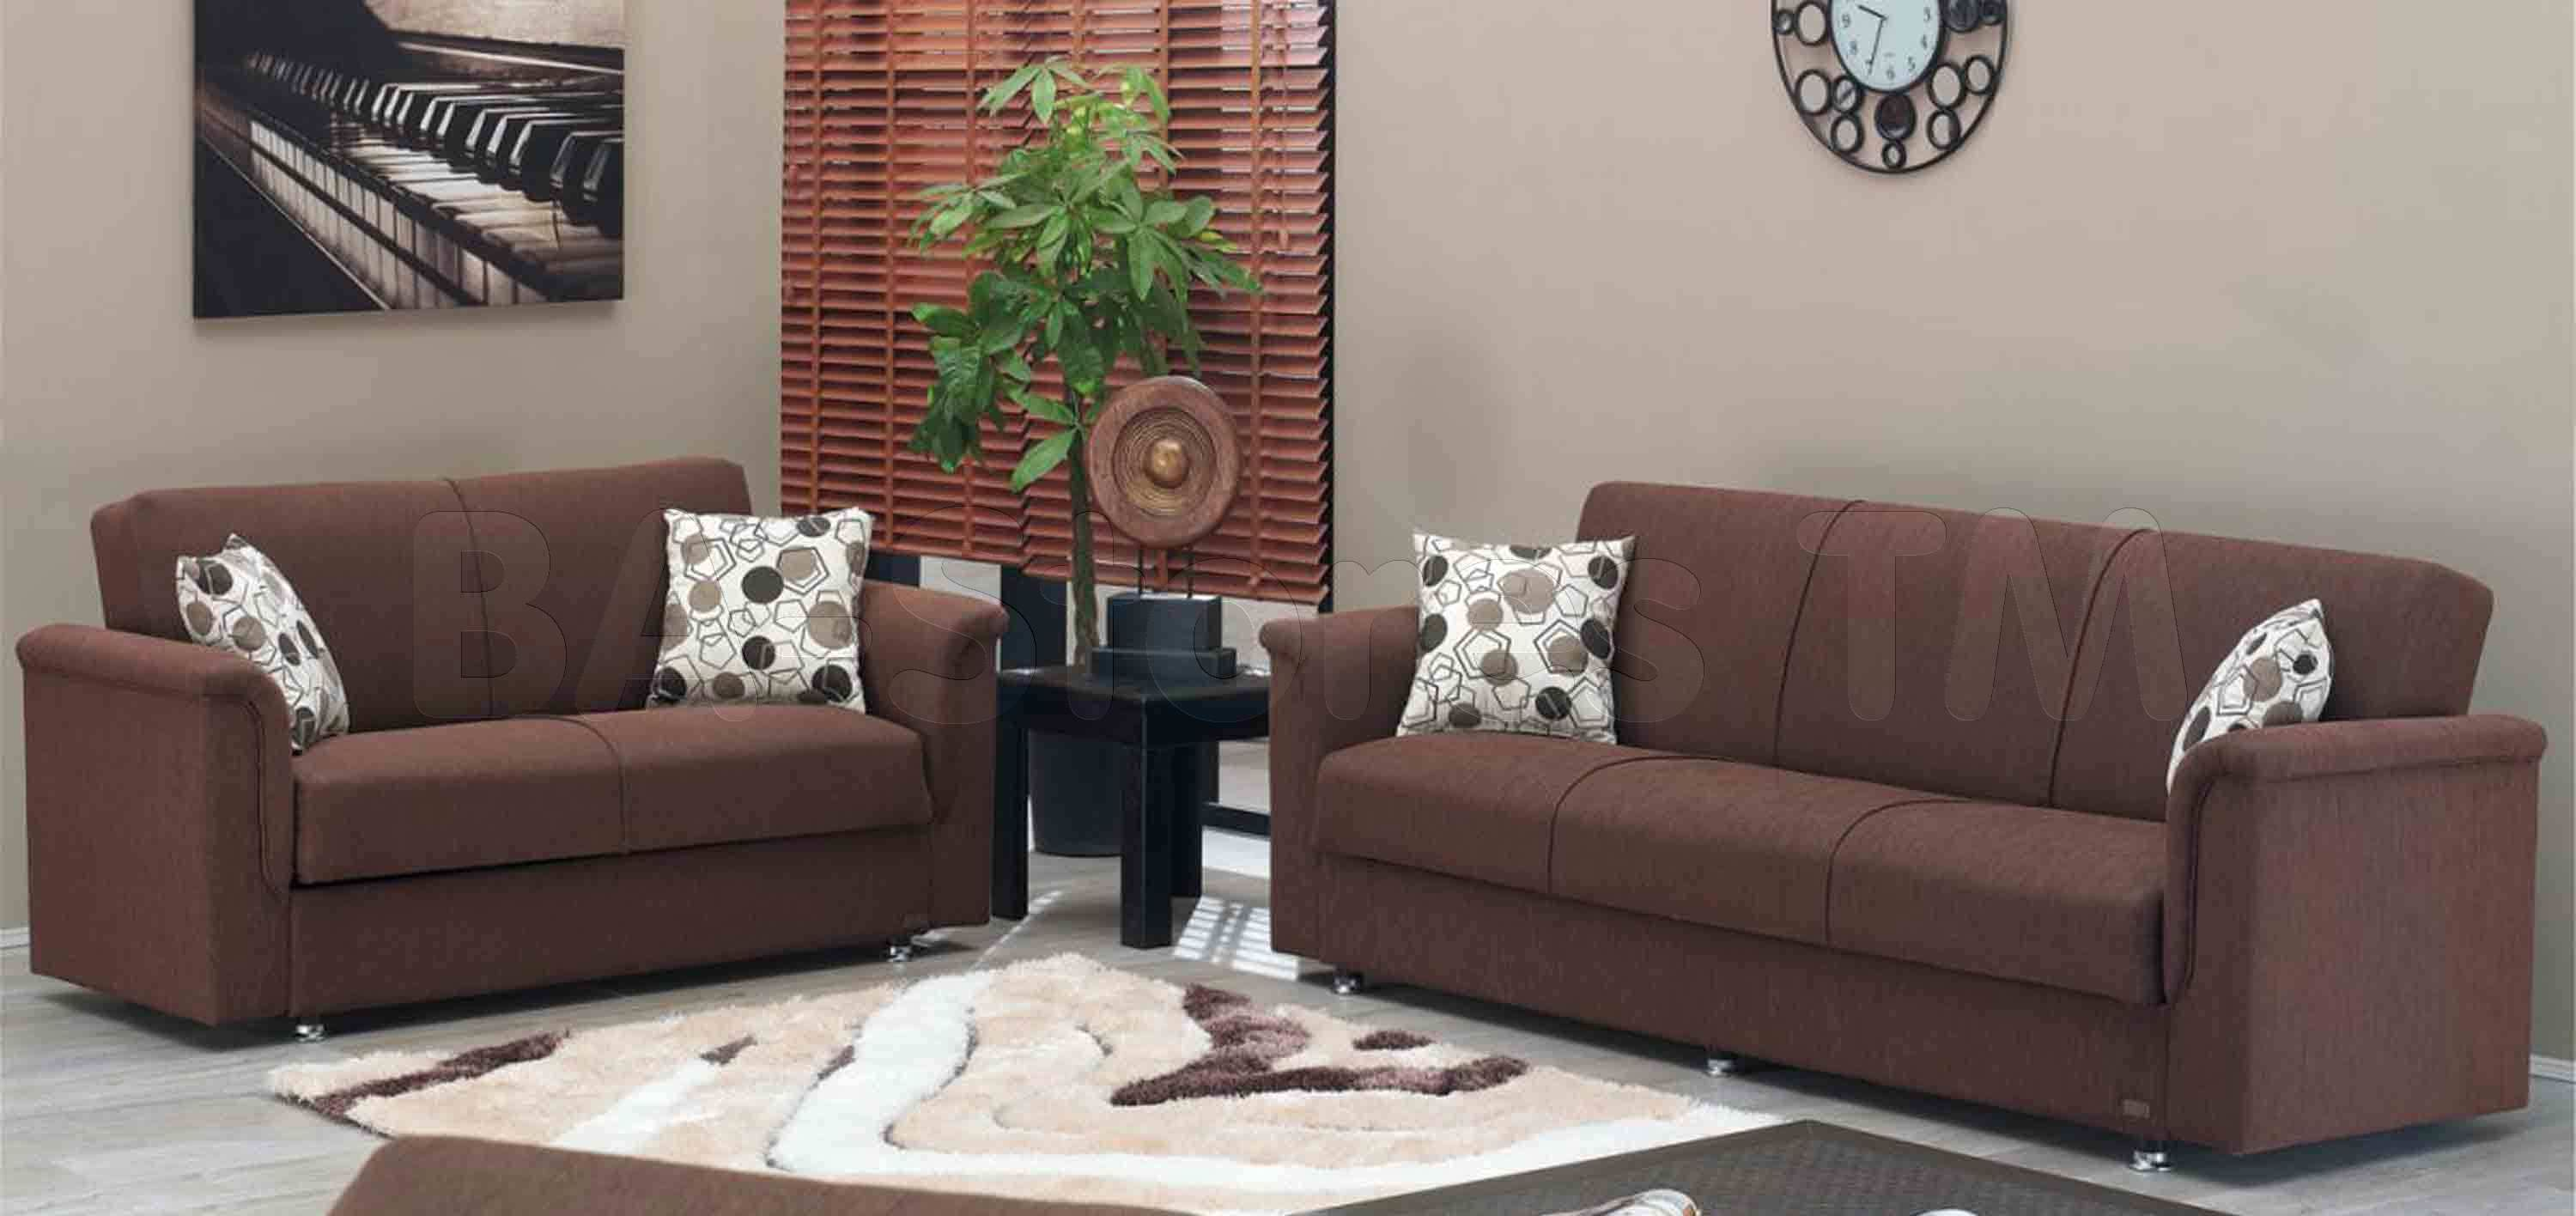 Image Result For Brown Sofa Wall Colour  Brown Sofa Living Room Simple Sofa Set Designs For Small Living Room Design Ideas